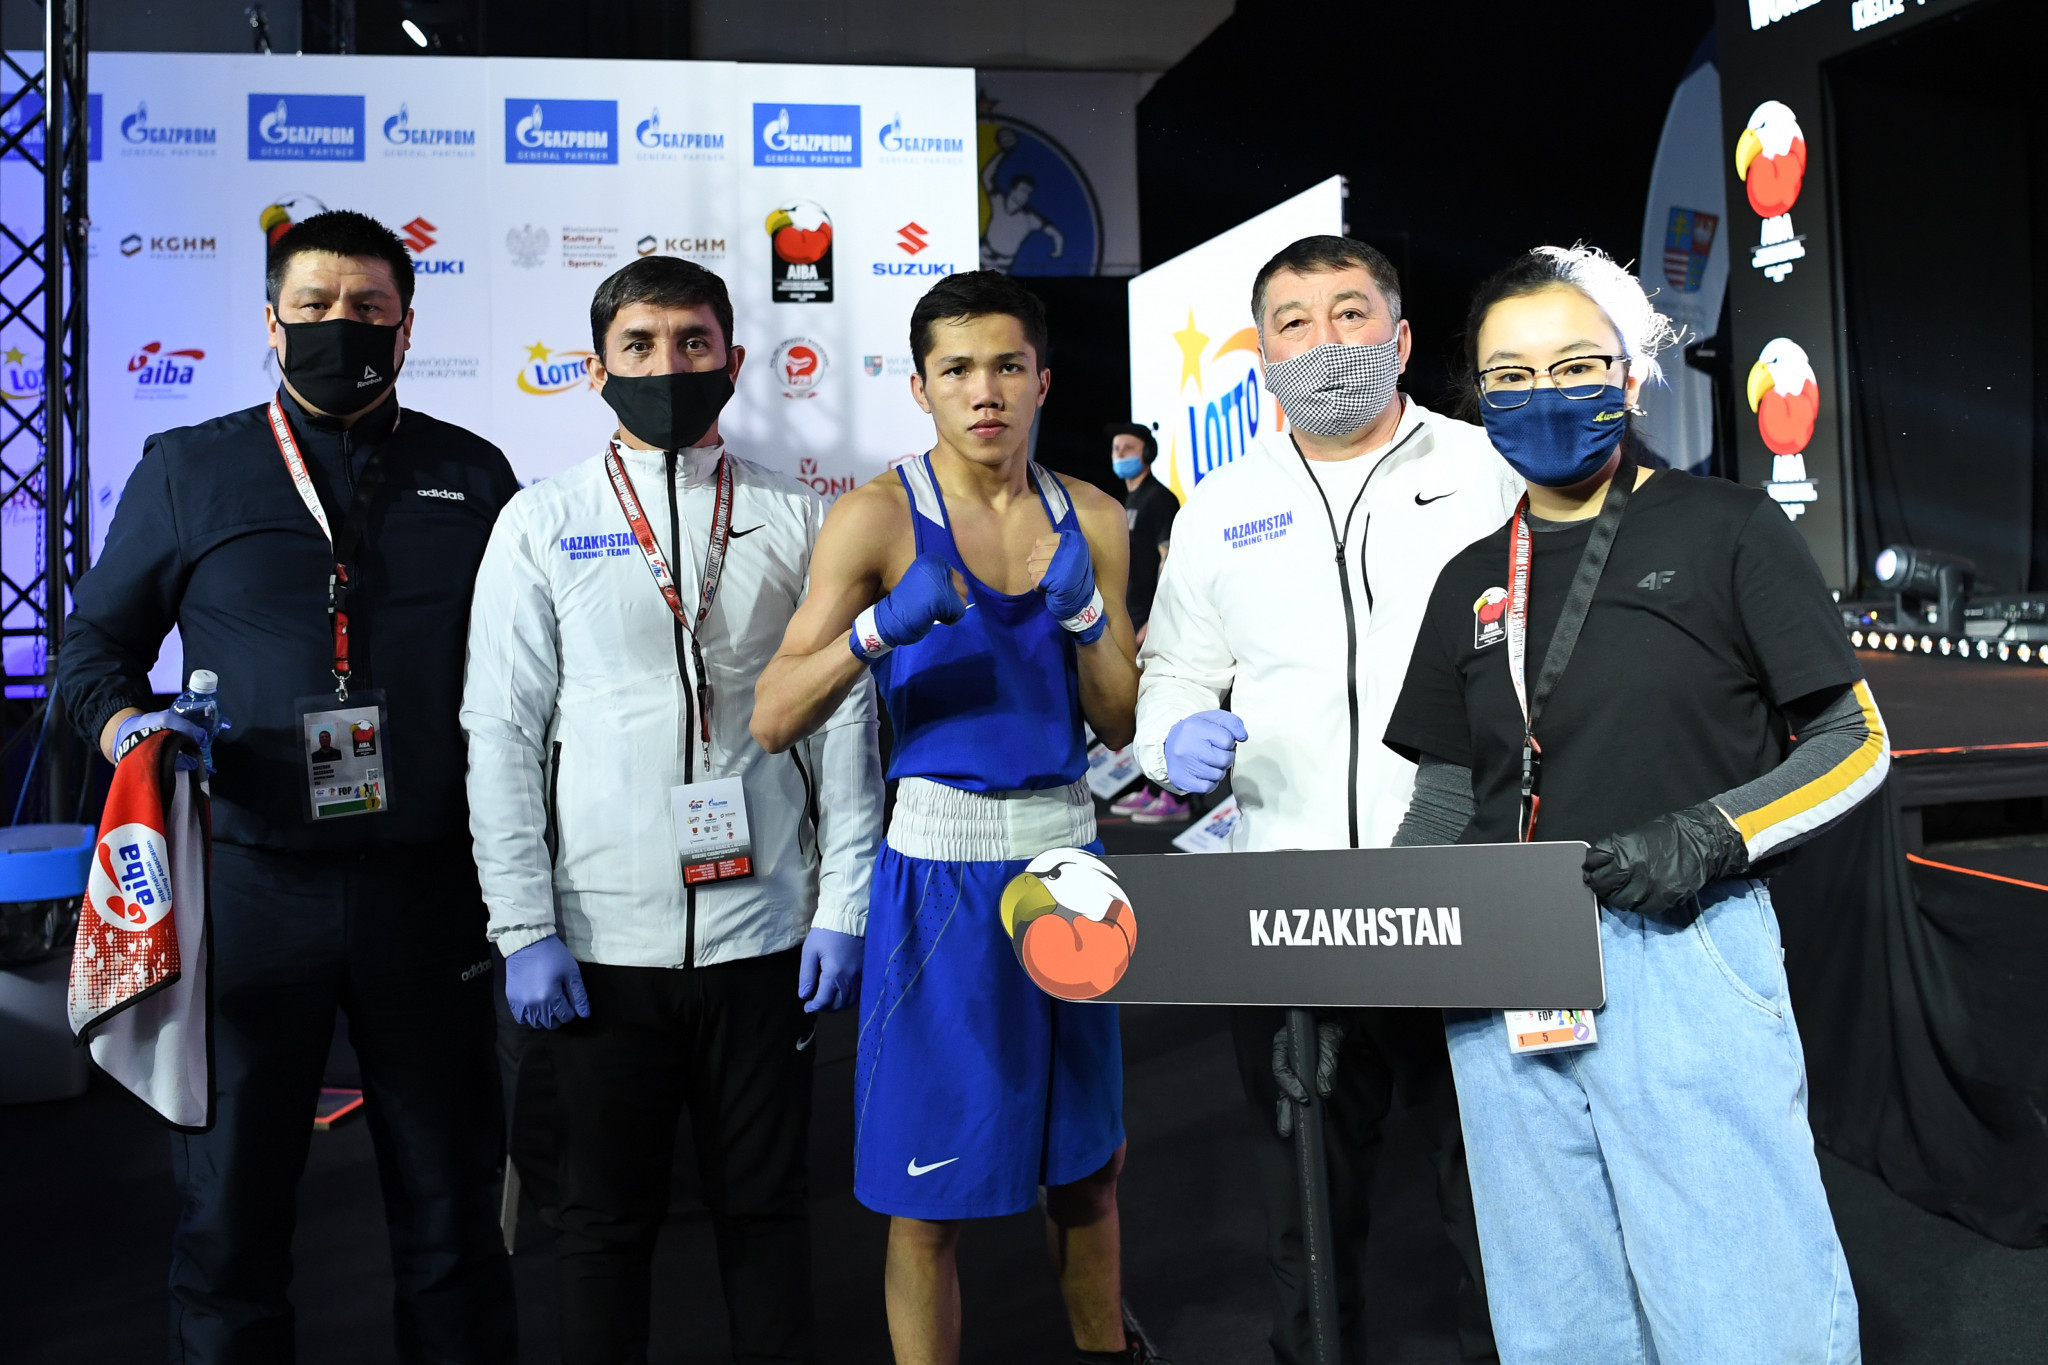 A boxer from Kazakhstan poses for a photo with his team ©AIBA